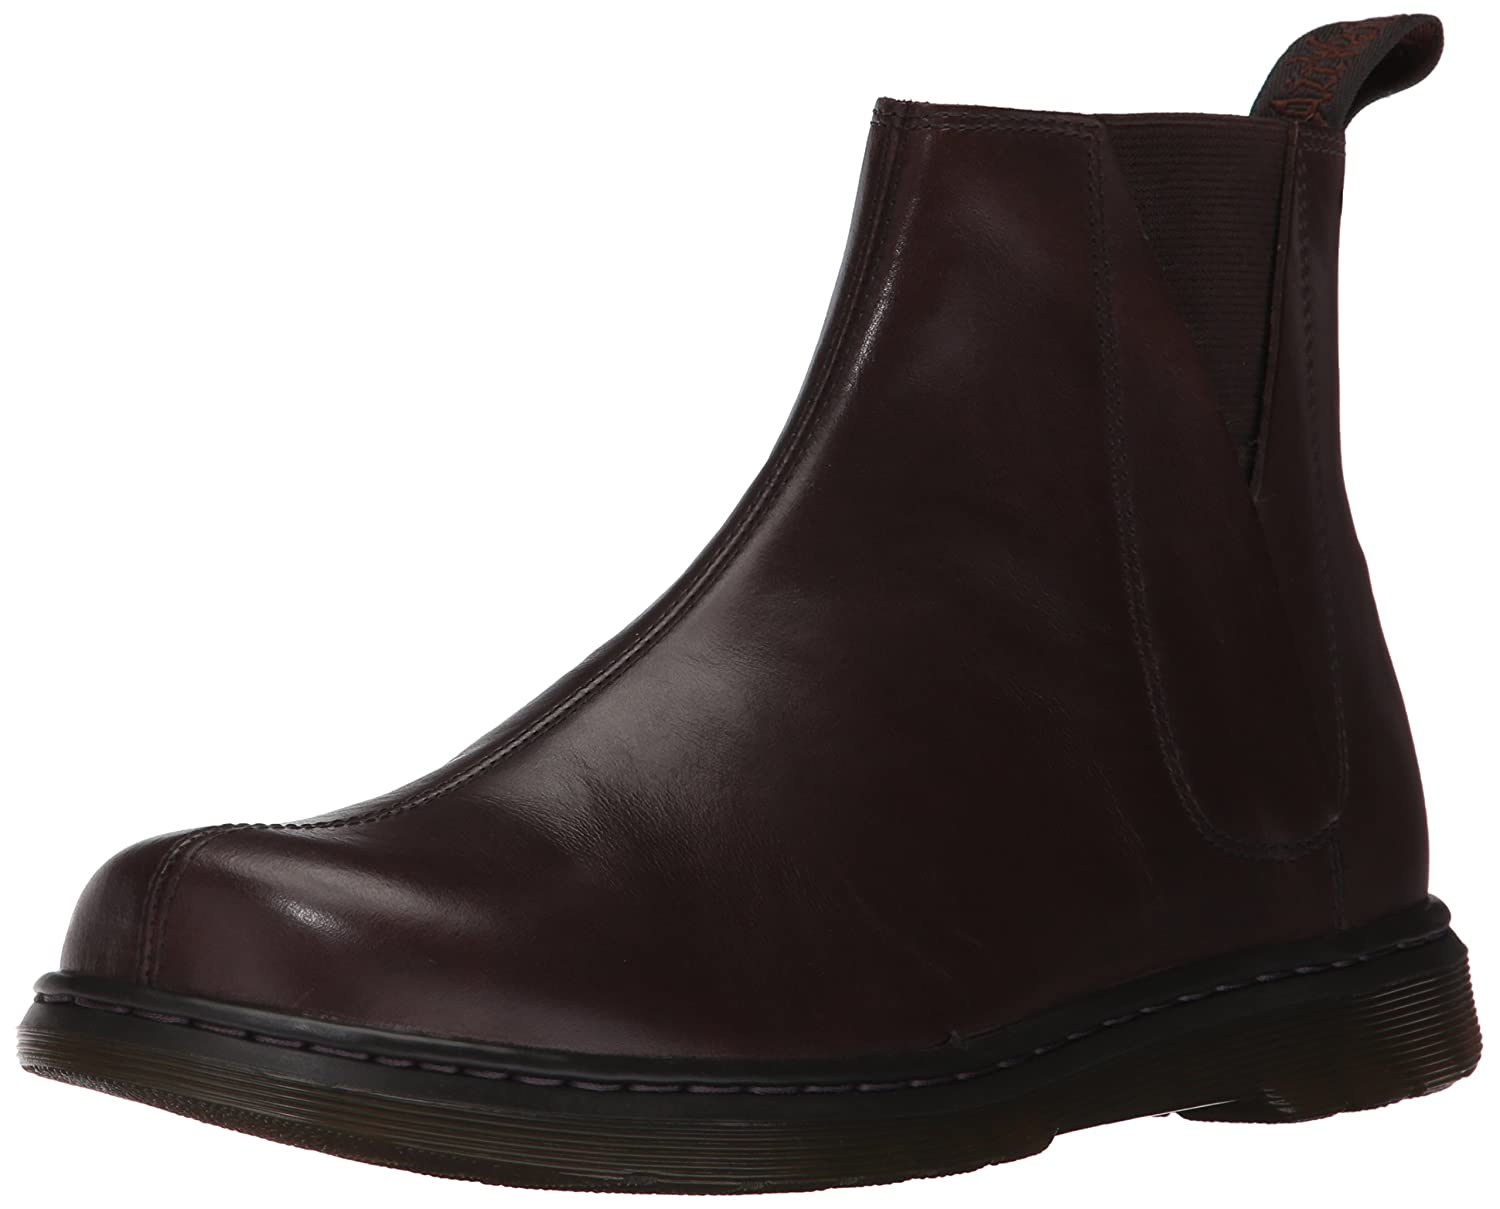 Dr. Martens Women's Noelle Dark Brown Chelsea Boot B01N0VZEY3 4 Medium UK (6 US)|Dark Brown